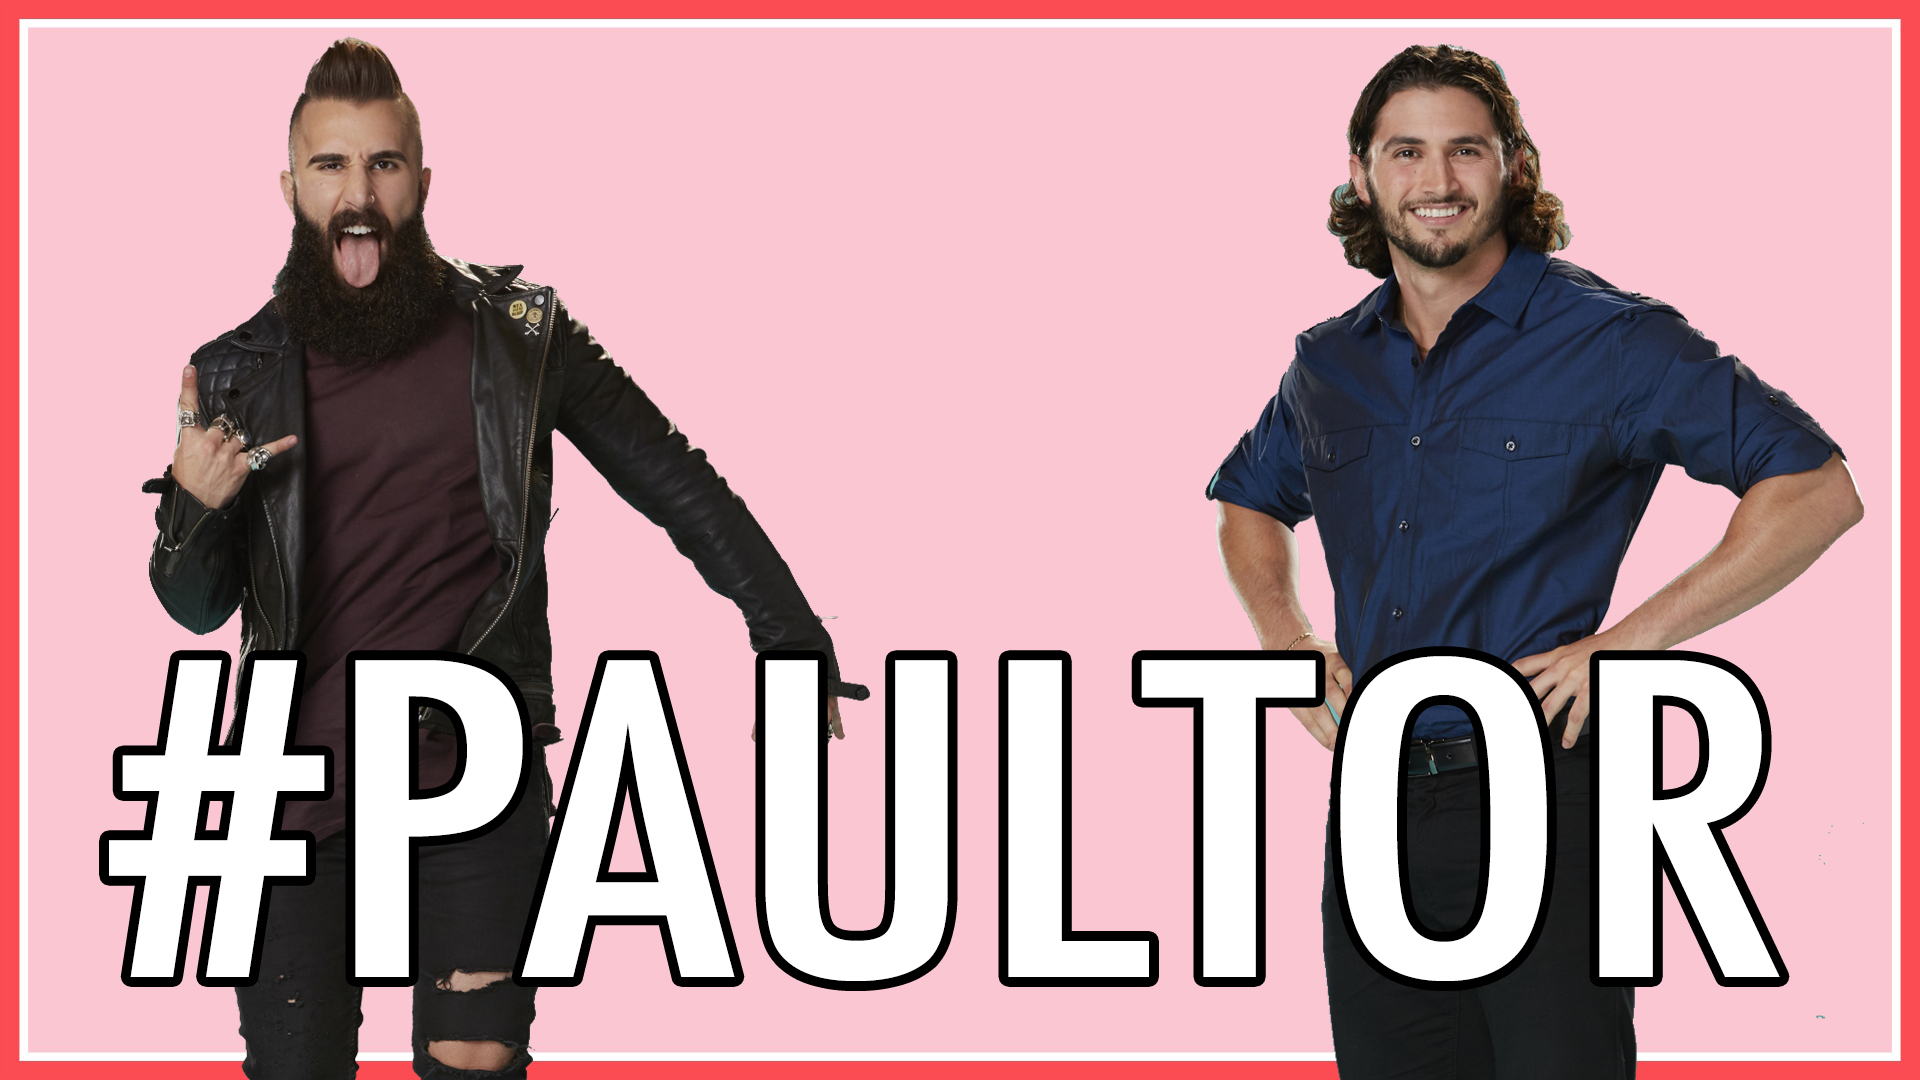 Question: What's the cute couple name of Paul and Victor's bromance?